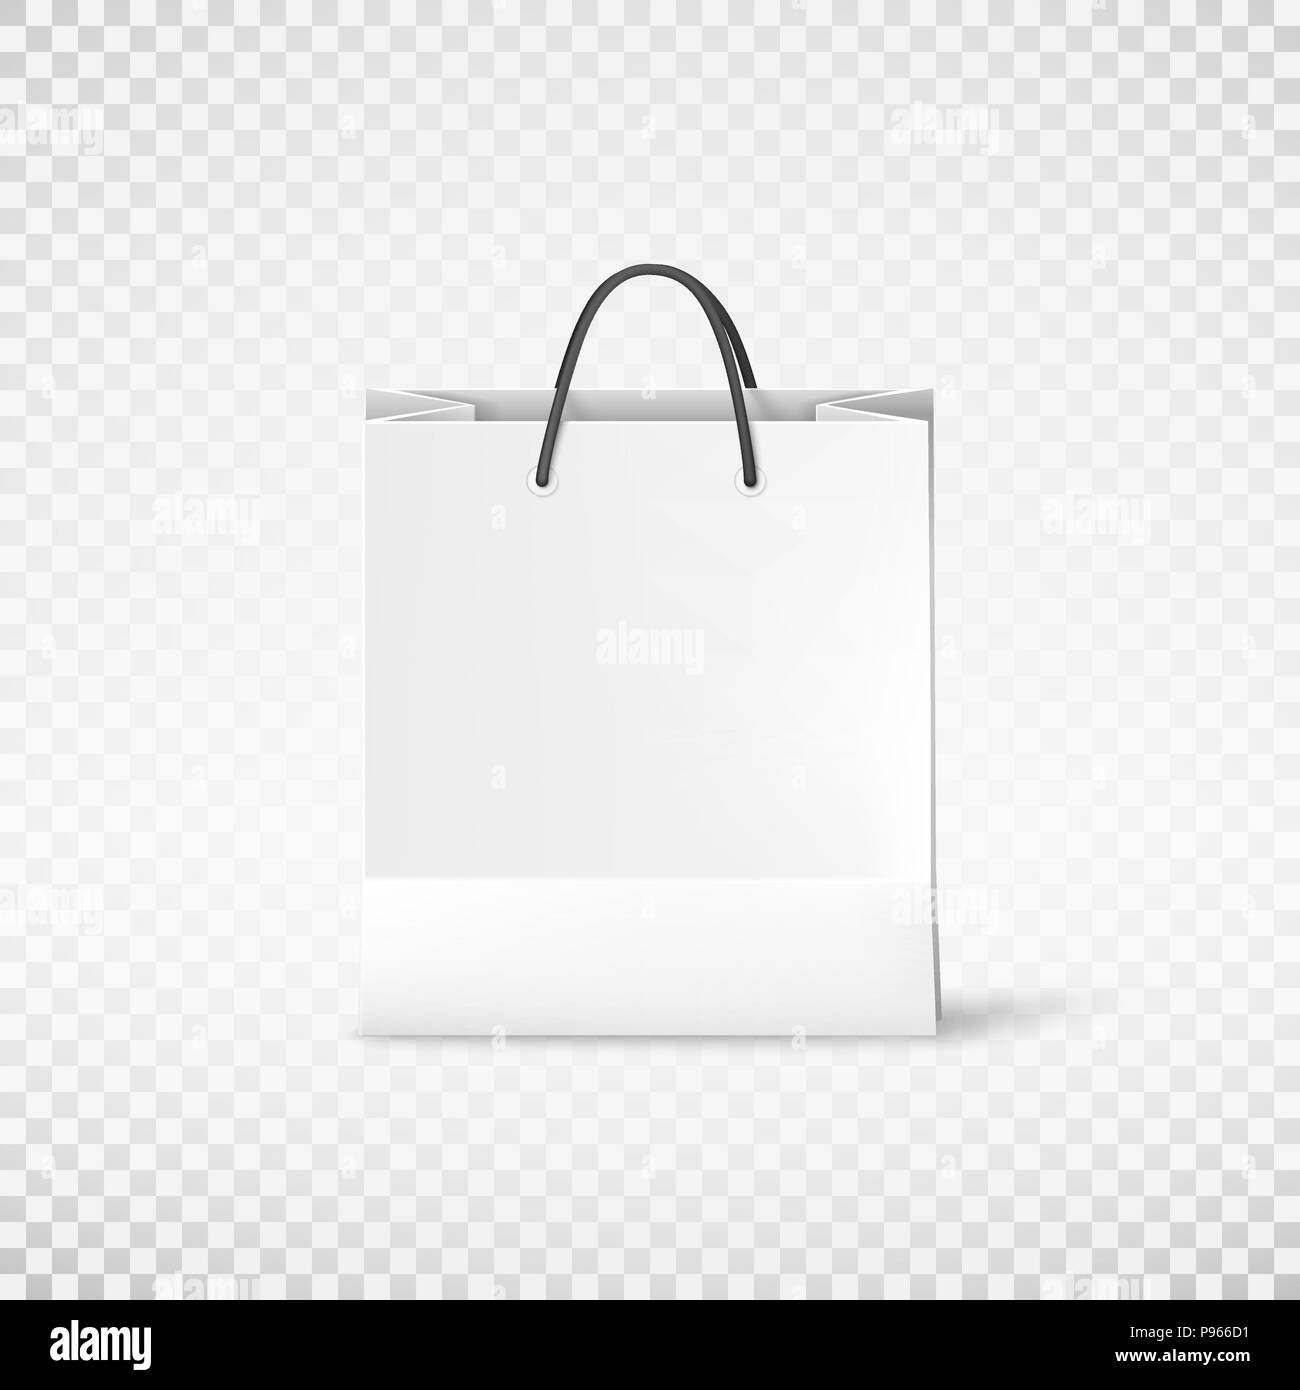 Snack product packing vector eps10 kraft paper takeaway bag mockup in vector. White Shopping Paper Bag Bag Template Vector Illustration Isolated On Transparent Background Stock Vector Image Art Alamy